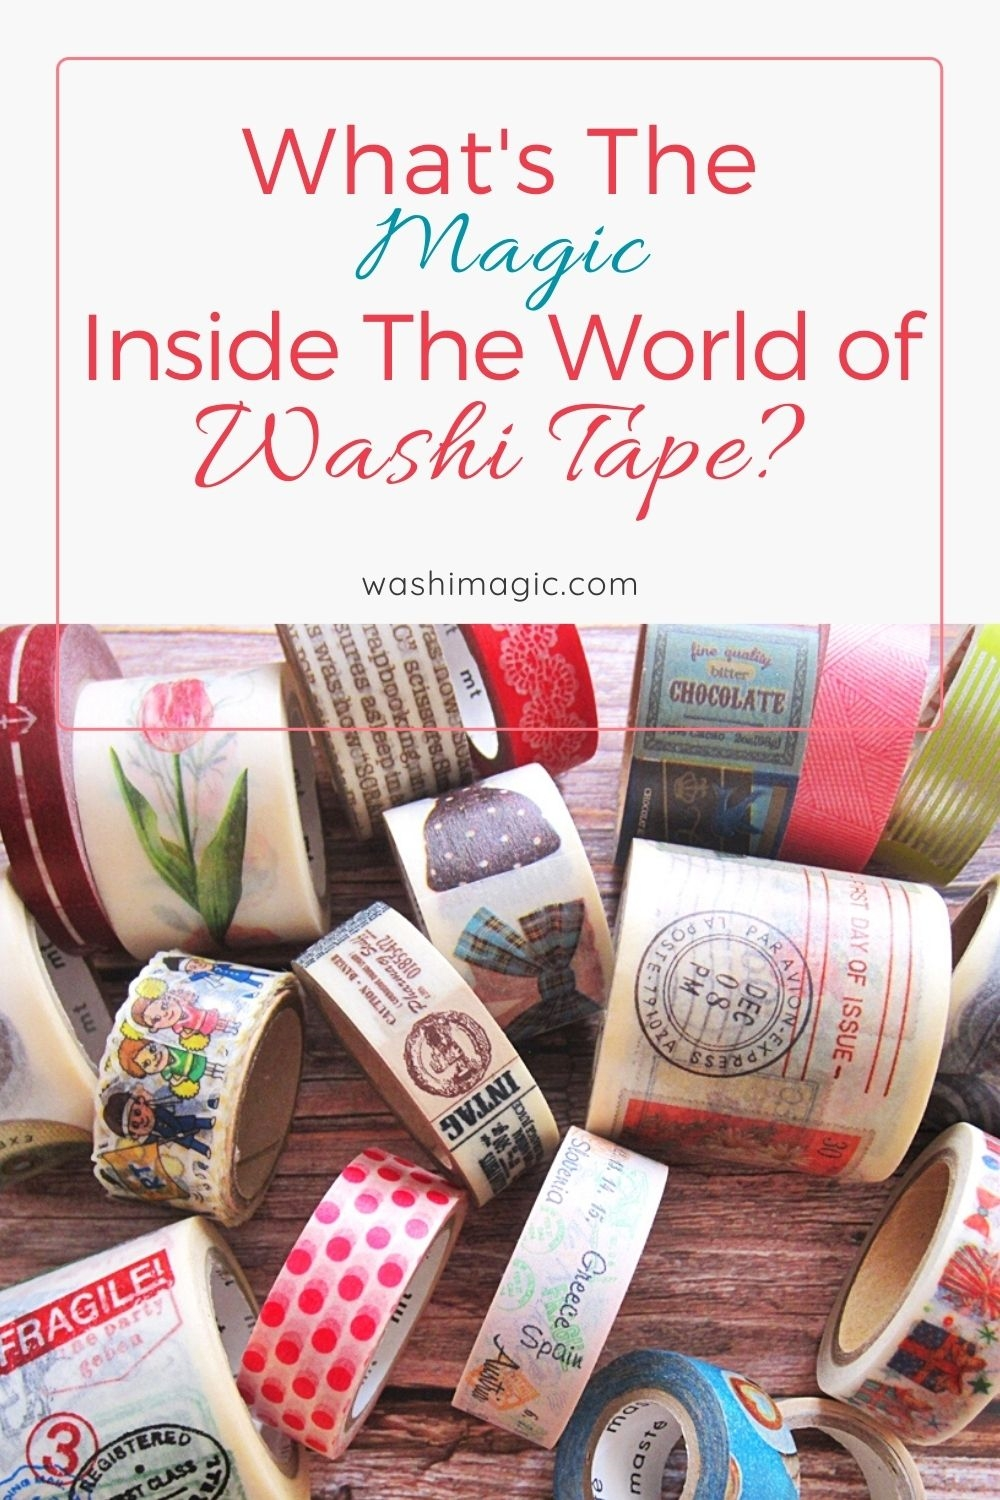 What's the magic inside the world of washi tape | Washi masking tape | decorative tape | Decorative masking tapes | Cute washi tapes | Washimagic.com